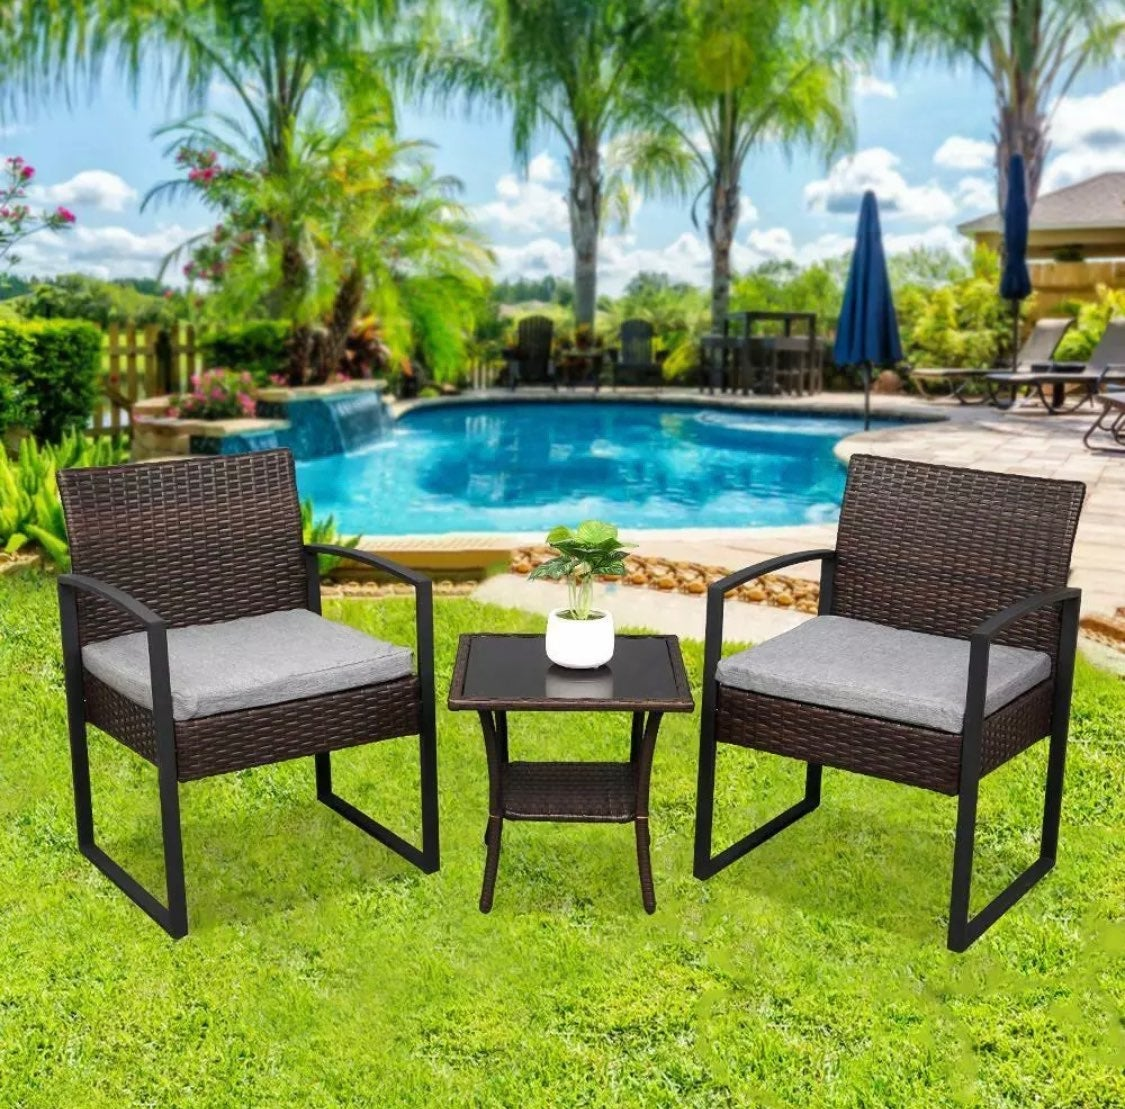 Premium Rattan Wicker Patio Chair Set